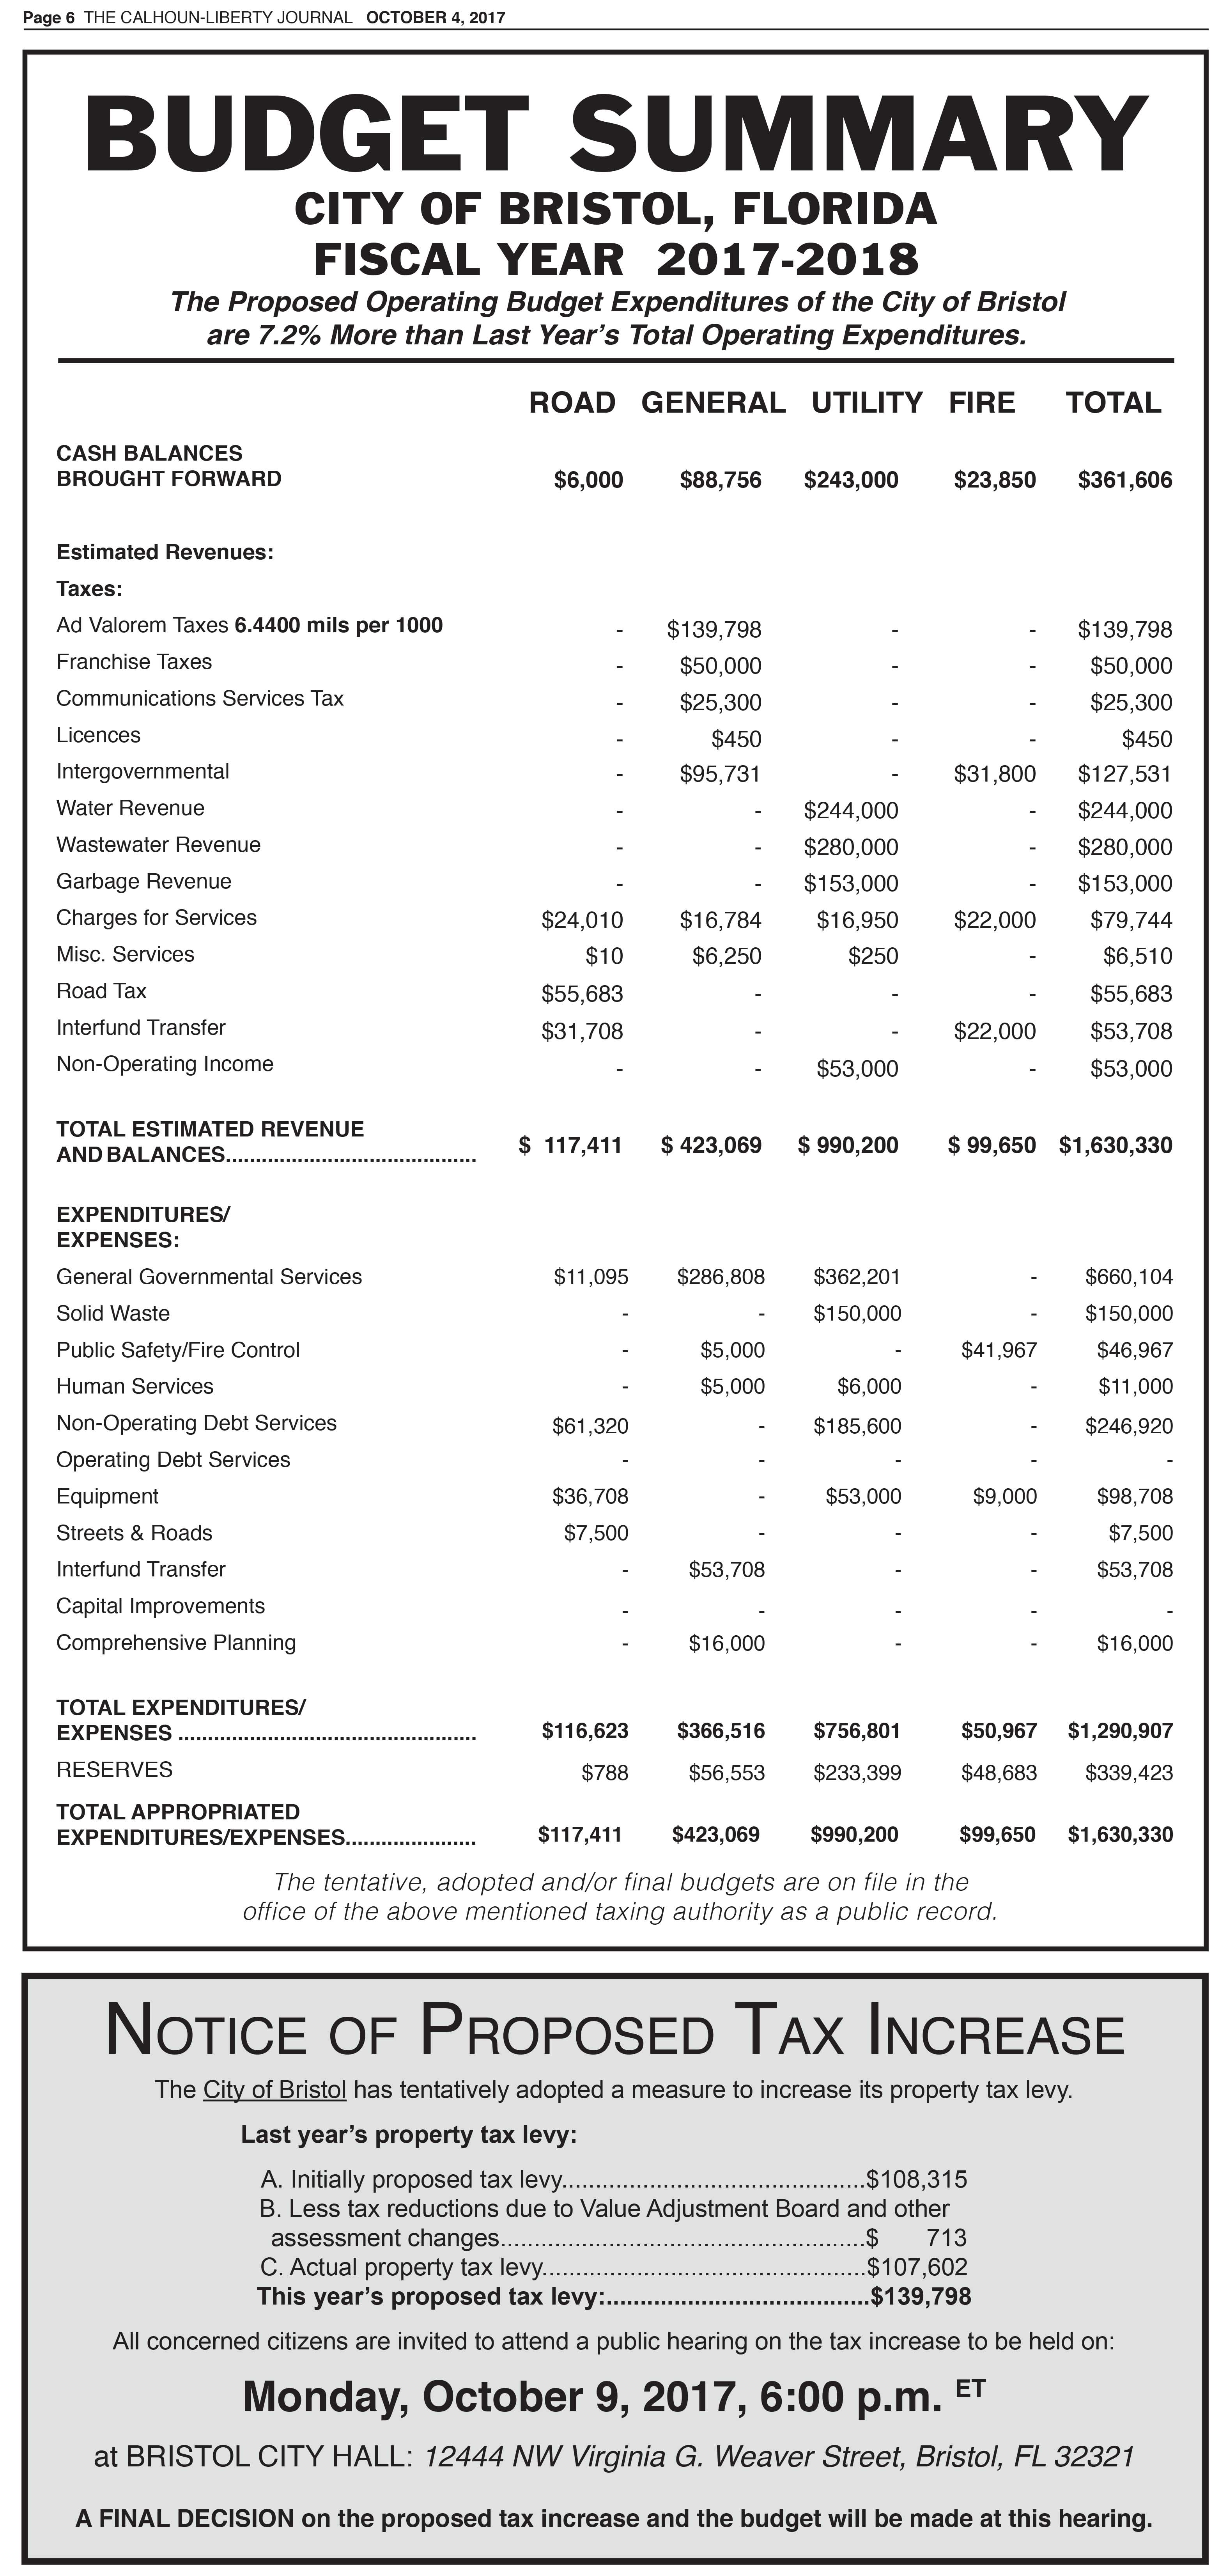 City of Bristol, Budget Summary FY 2017-2018